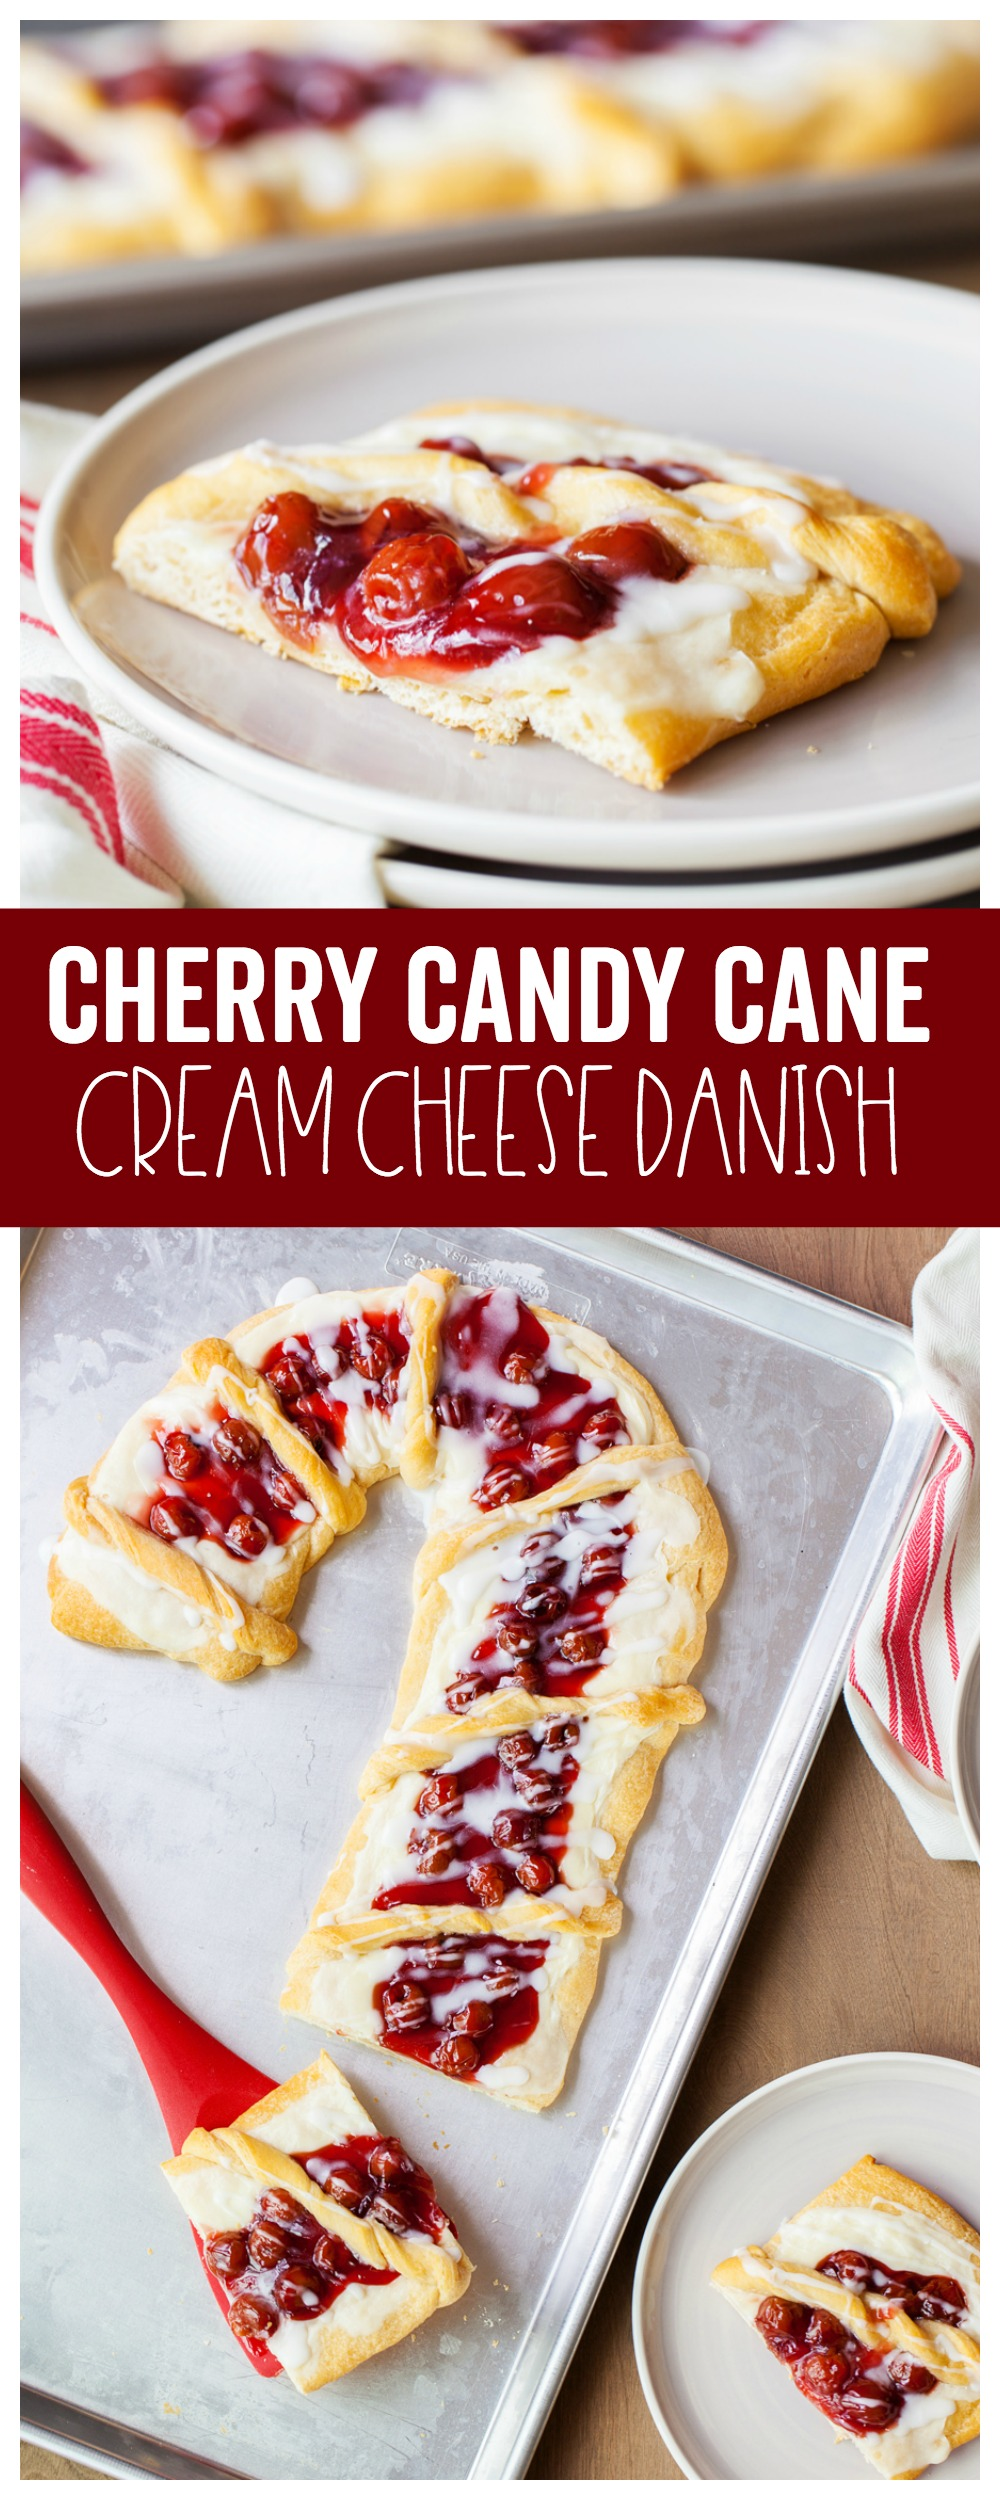 Candy Cane Cherry & Cream Cheese Danish is the perfect sweet dessert for your holiday season. You only need a few simple pantry staples to make this delicious recipe.